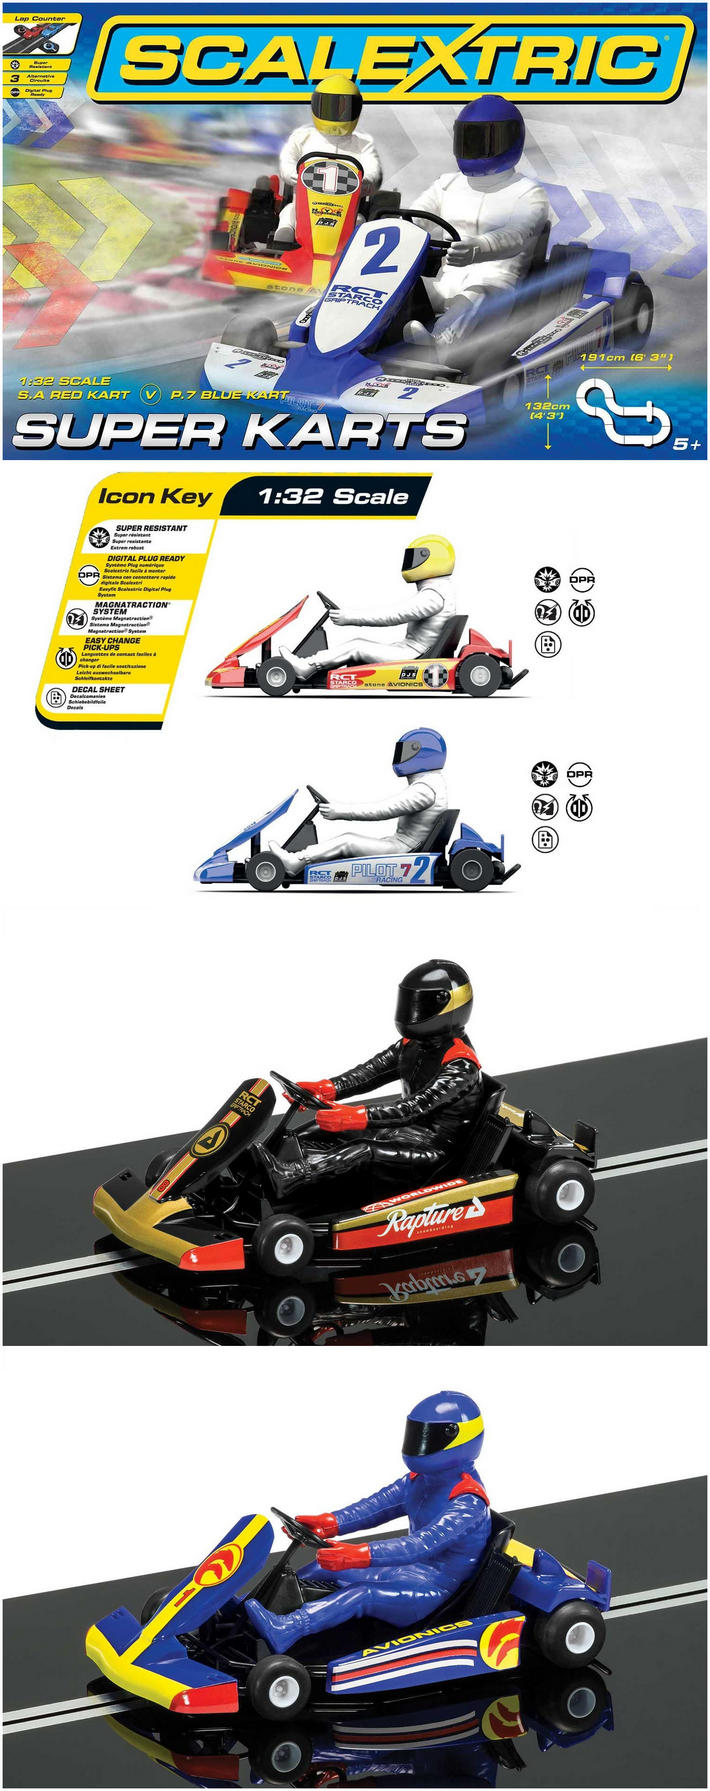 Scalextric Super Karts Kollage